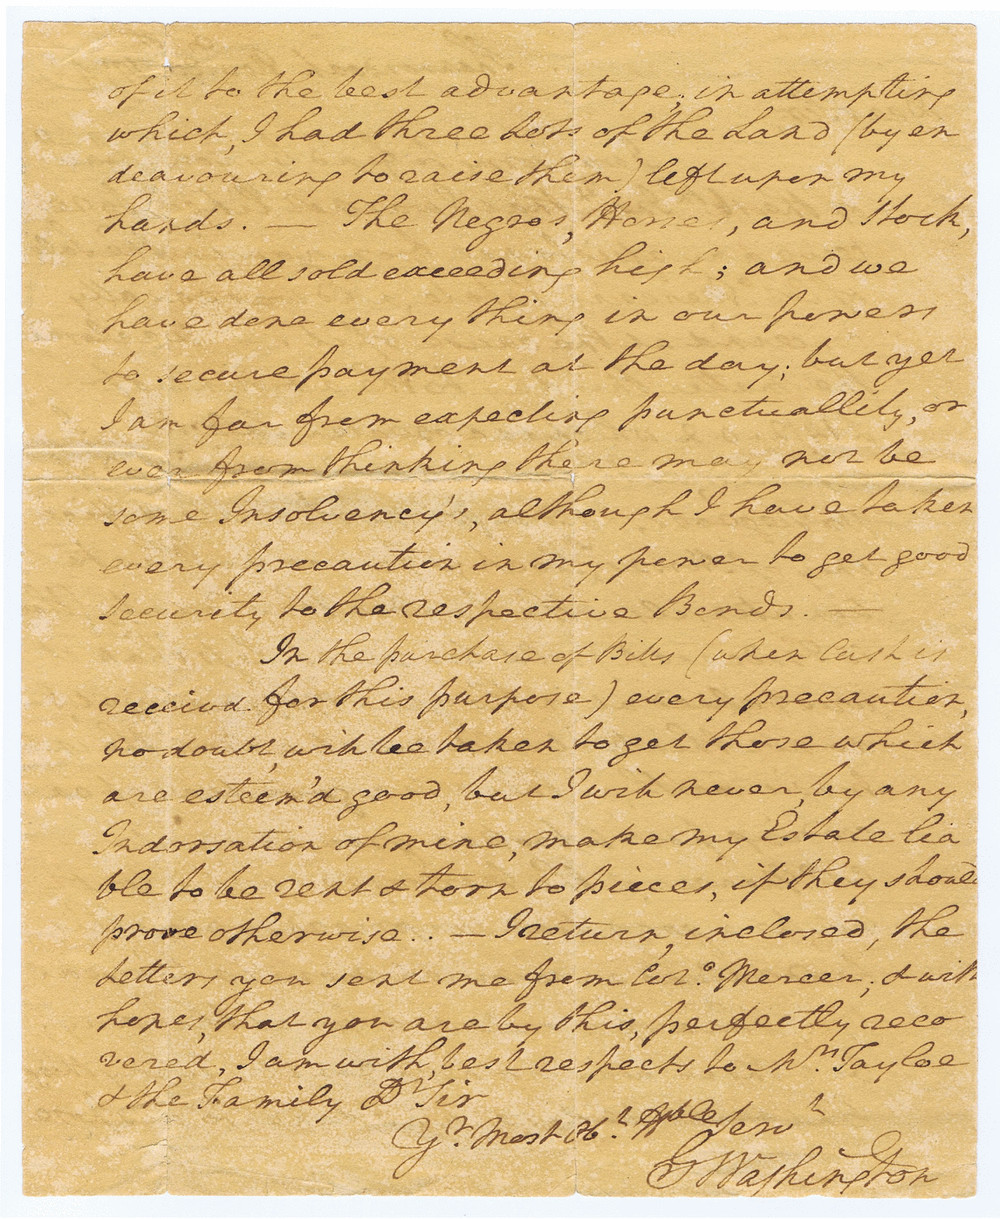 Auction Collectibles Original Historical Documents Cutler Hammer Drum Switch Wiring Diagram The Negroes Horses And Stock Have All Sold Exceeding High